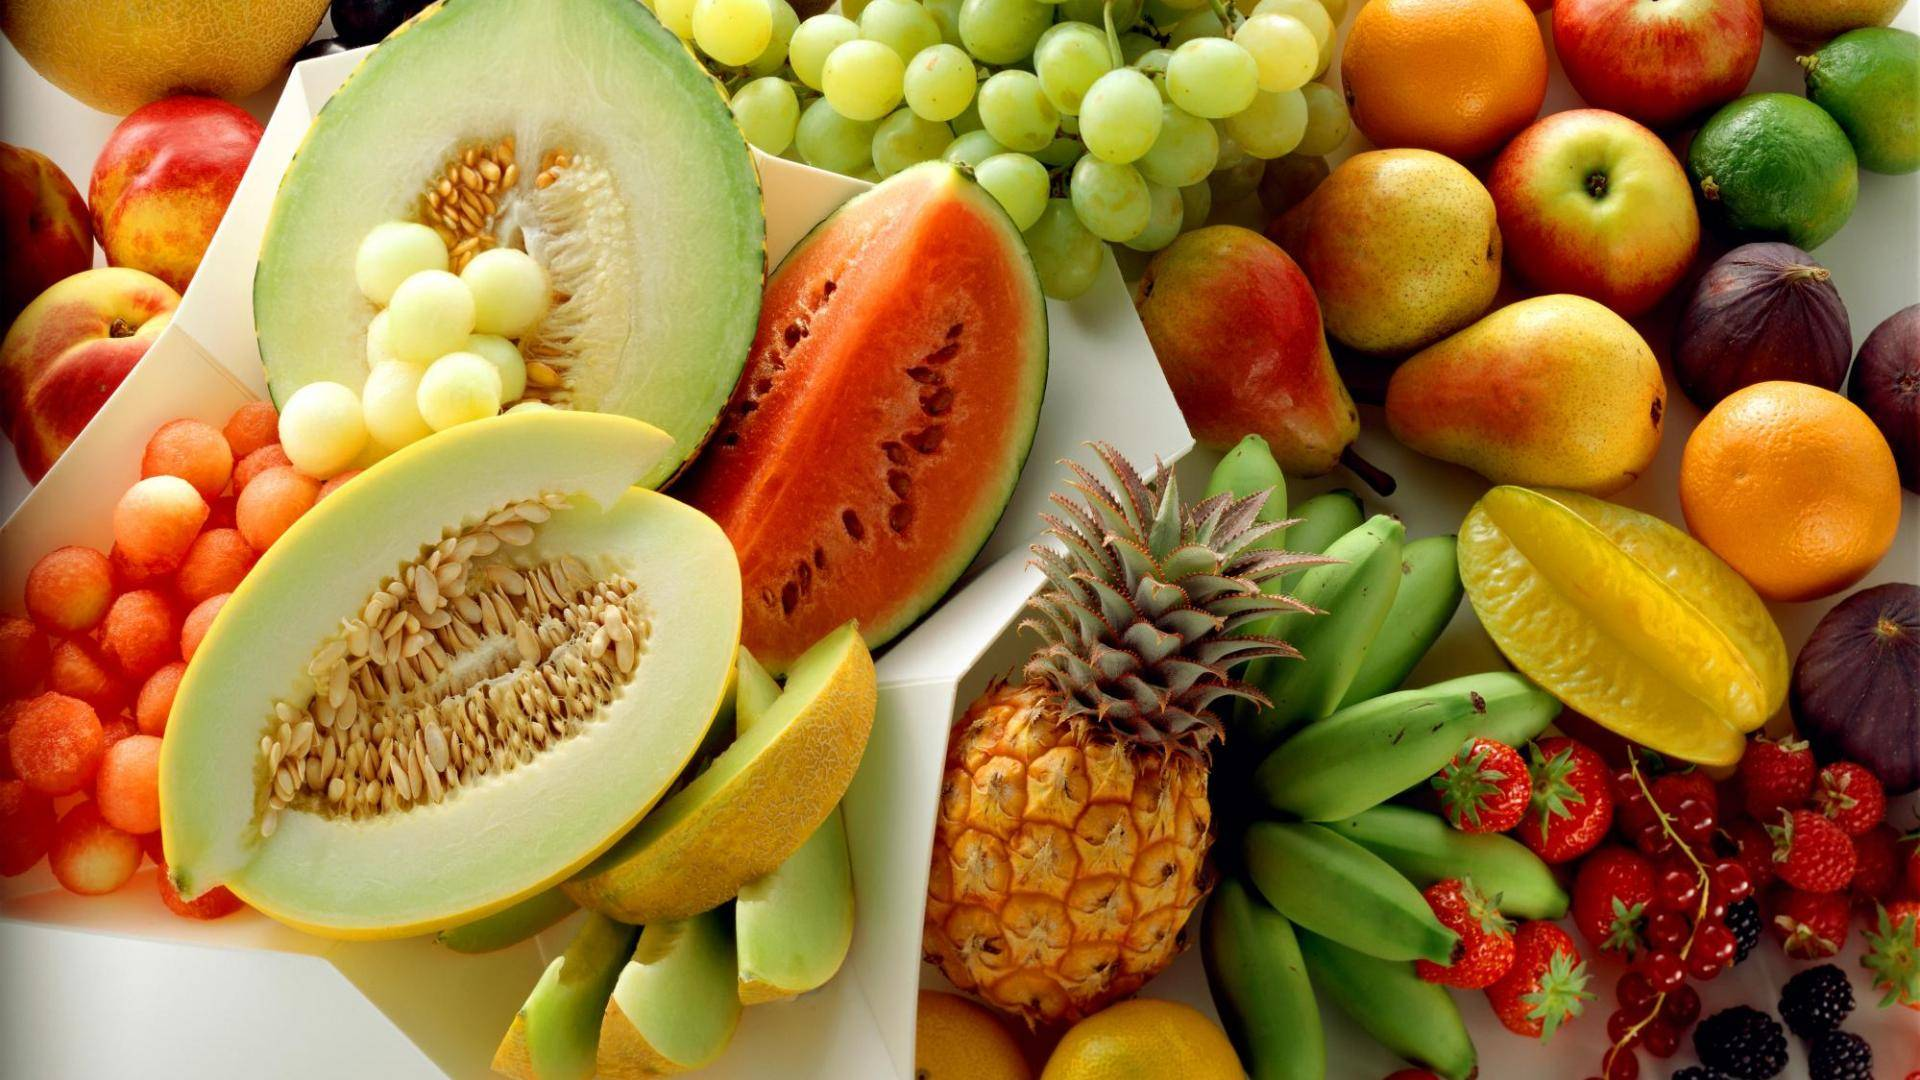 fruits and vegetables   FruitsVegetables Wallpaper 1920x1080